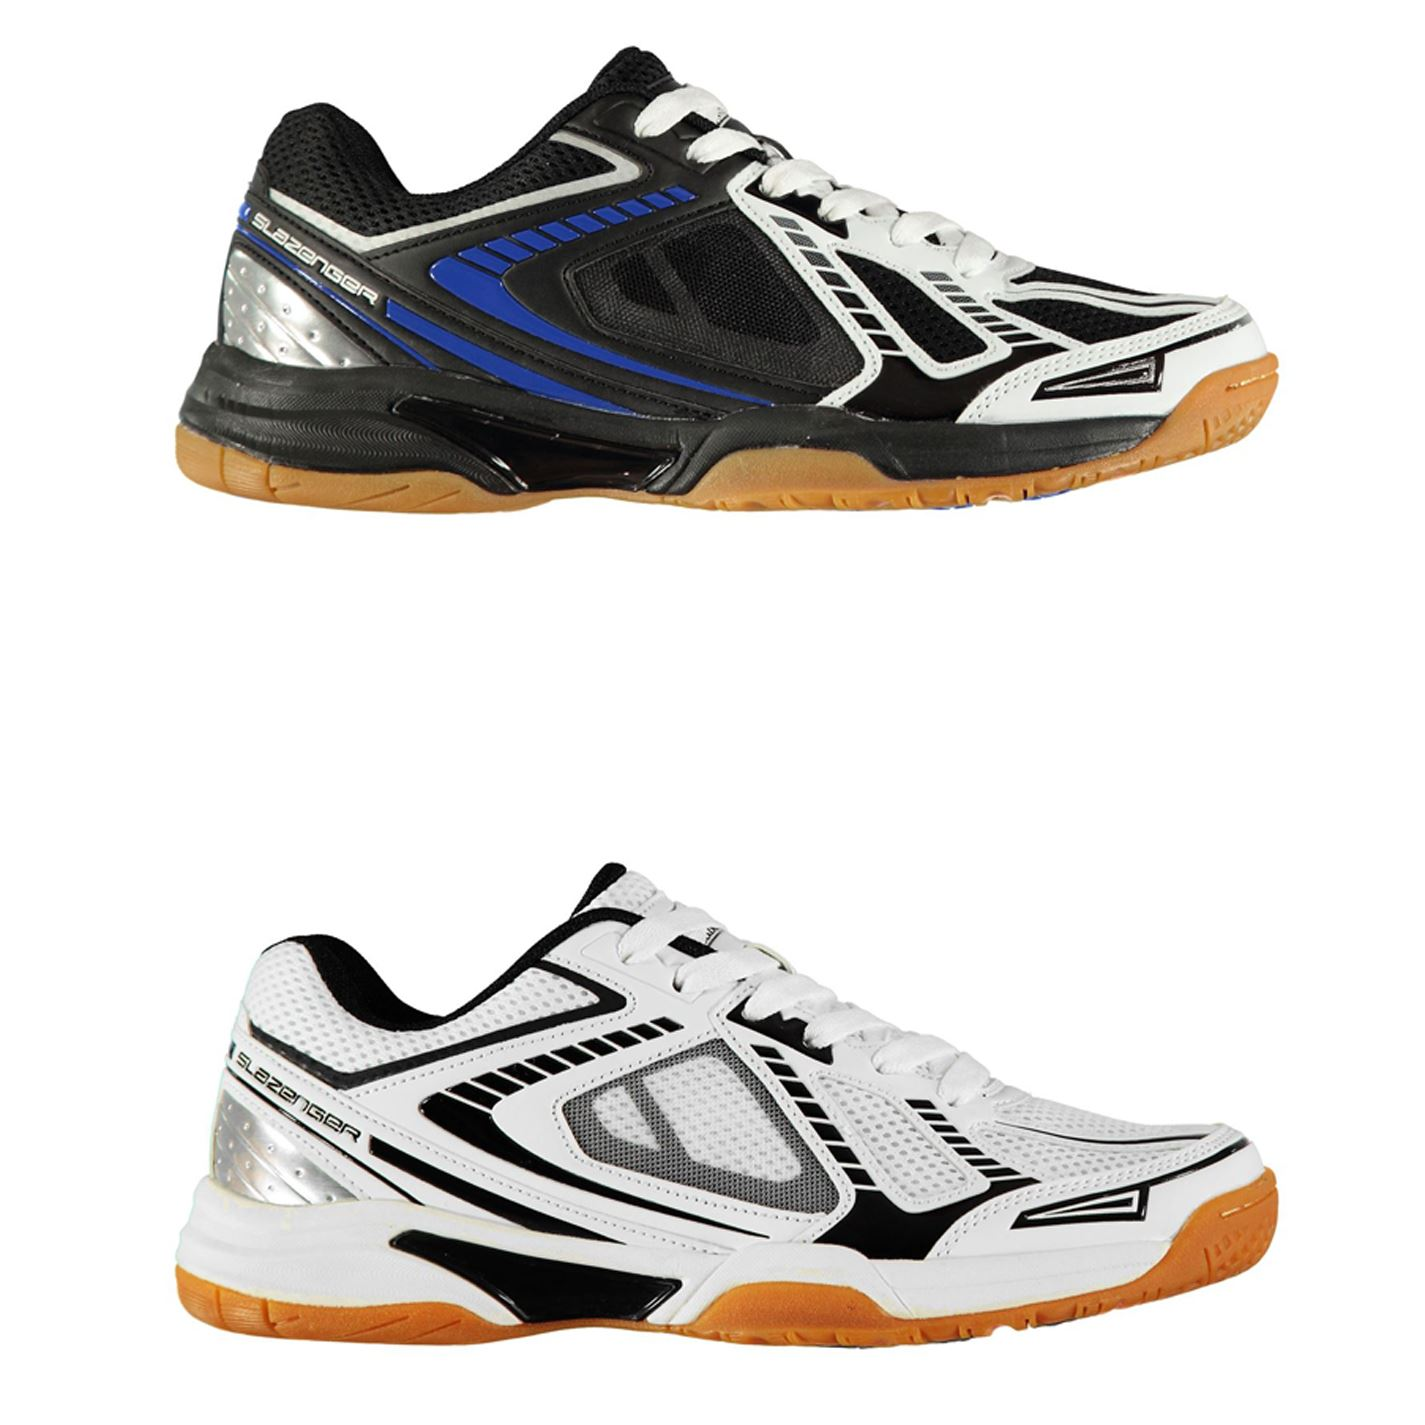 The 10 Best Squash Shoes of 2020 | Sport Consumer